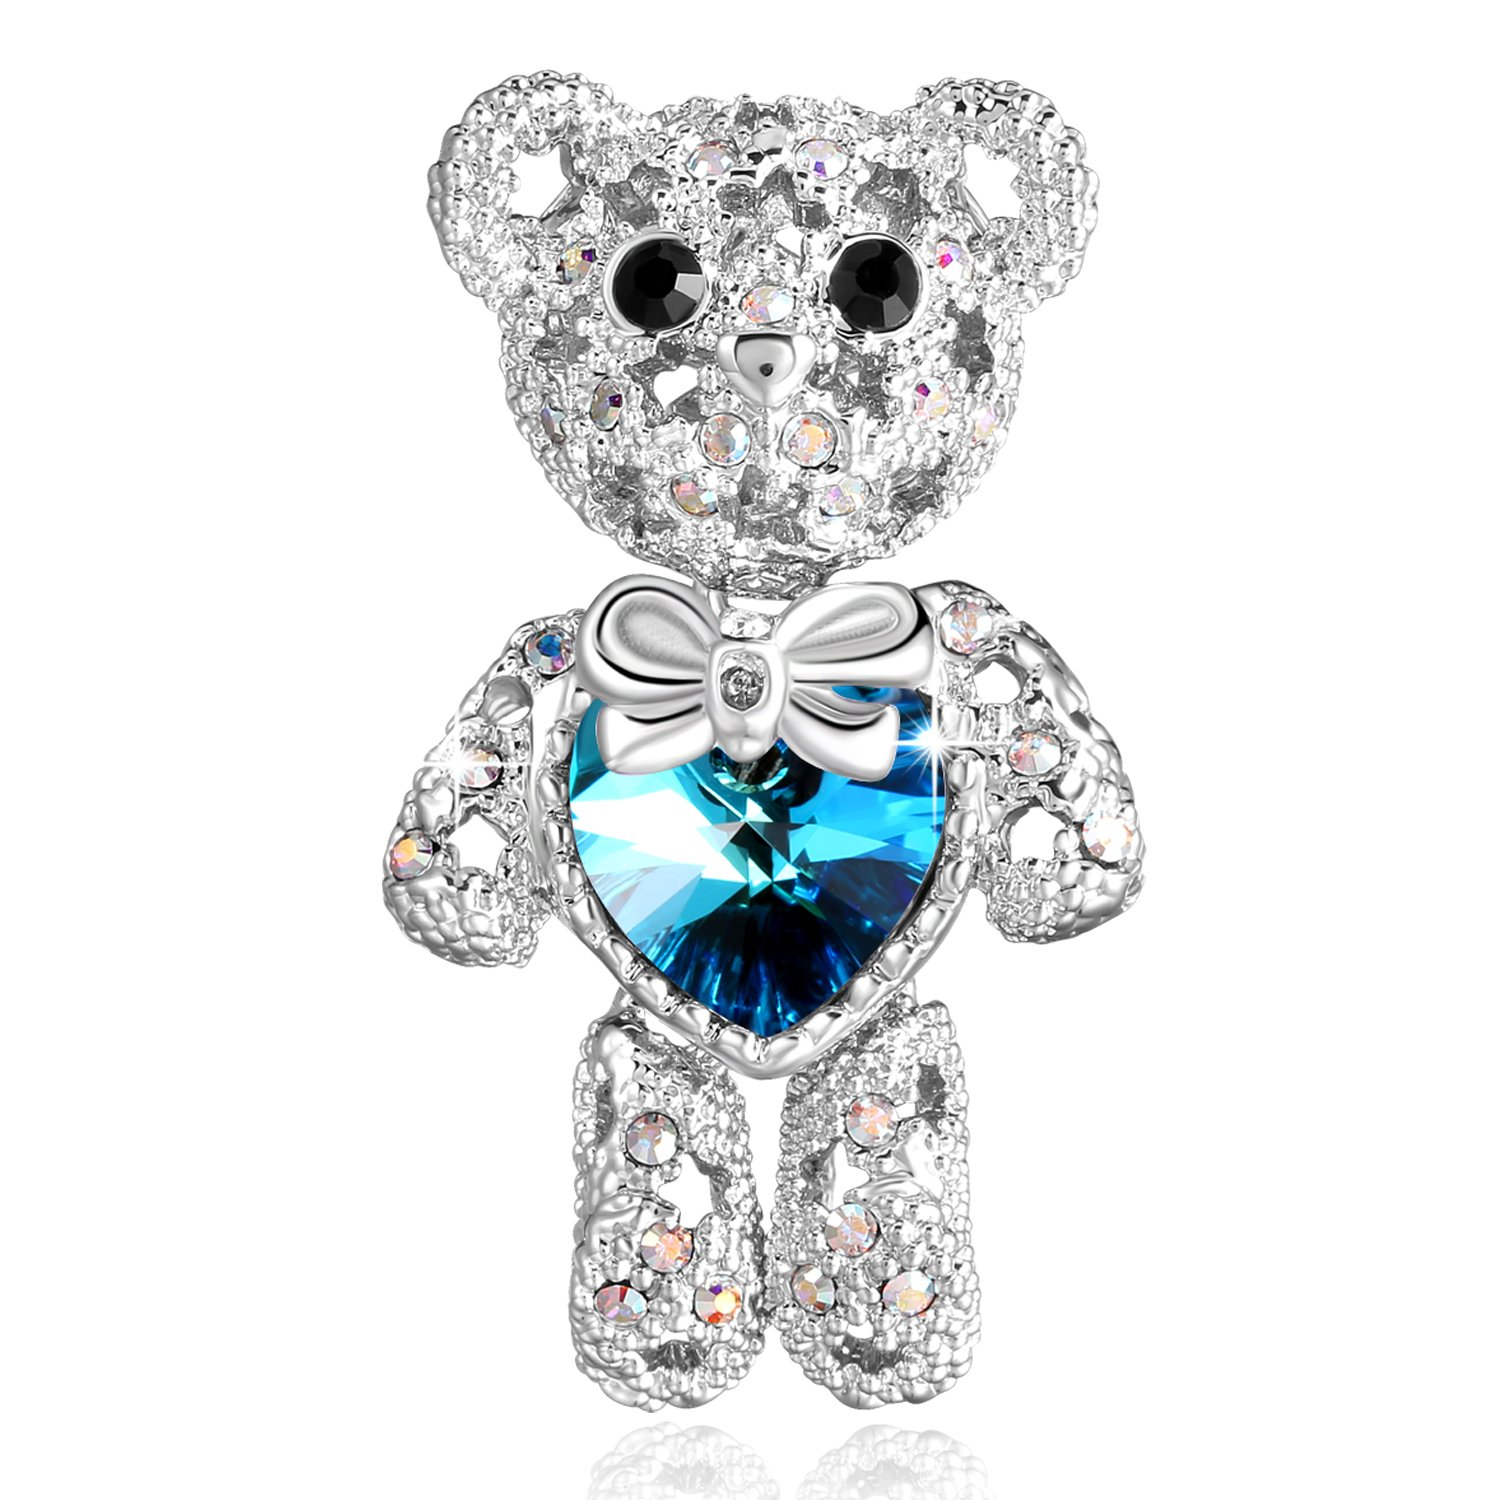 PLATO H Cute Animal Brooch Lovely Bear Heart Brooch & Pins with Swarovski Crystals, Fashion Jewelry Gift for Women,, Blue Crystal Bear Brooch